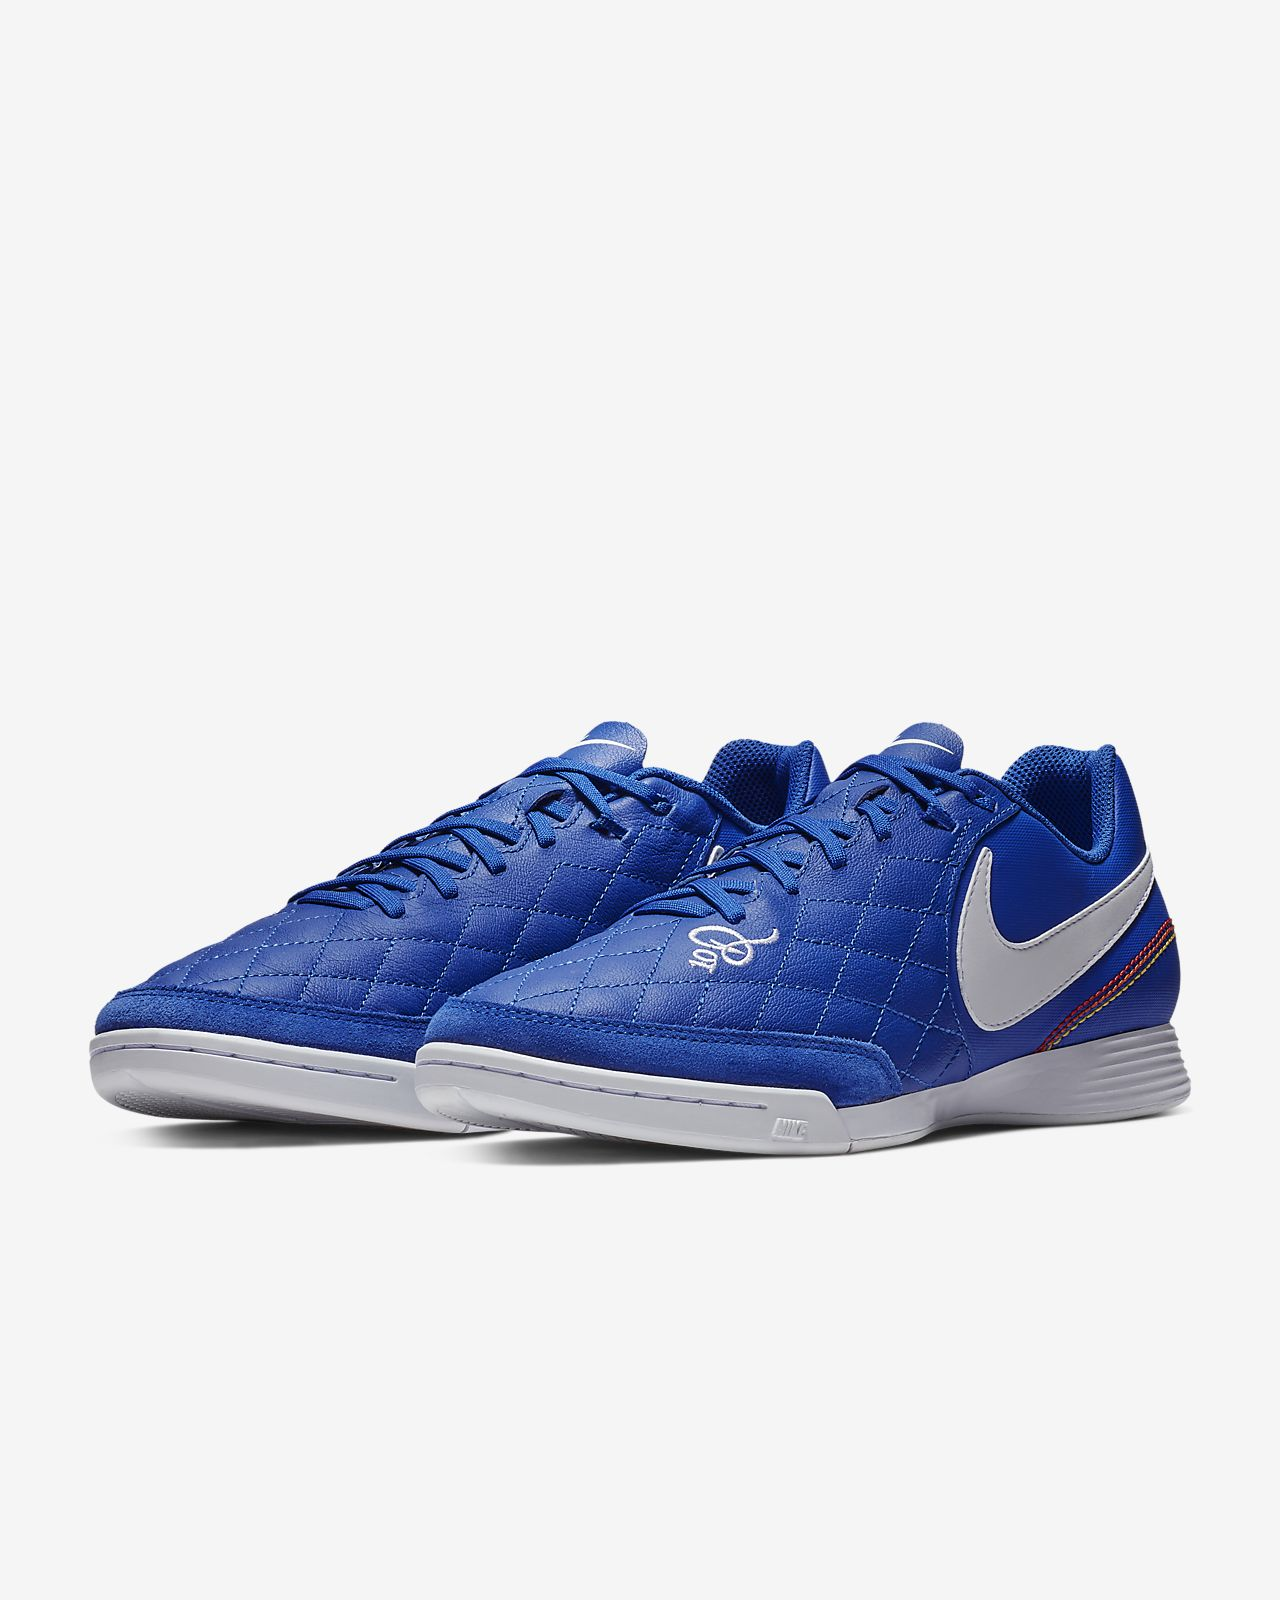 the latest 472b1 f596a ... Nike TiempoX Legend VII Academy 10R Indoor Court Football Shoe